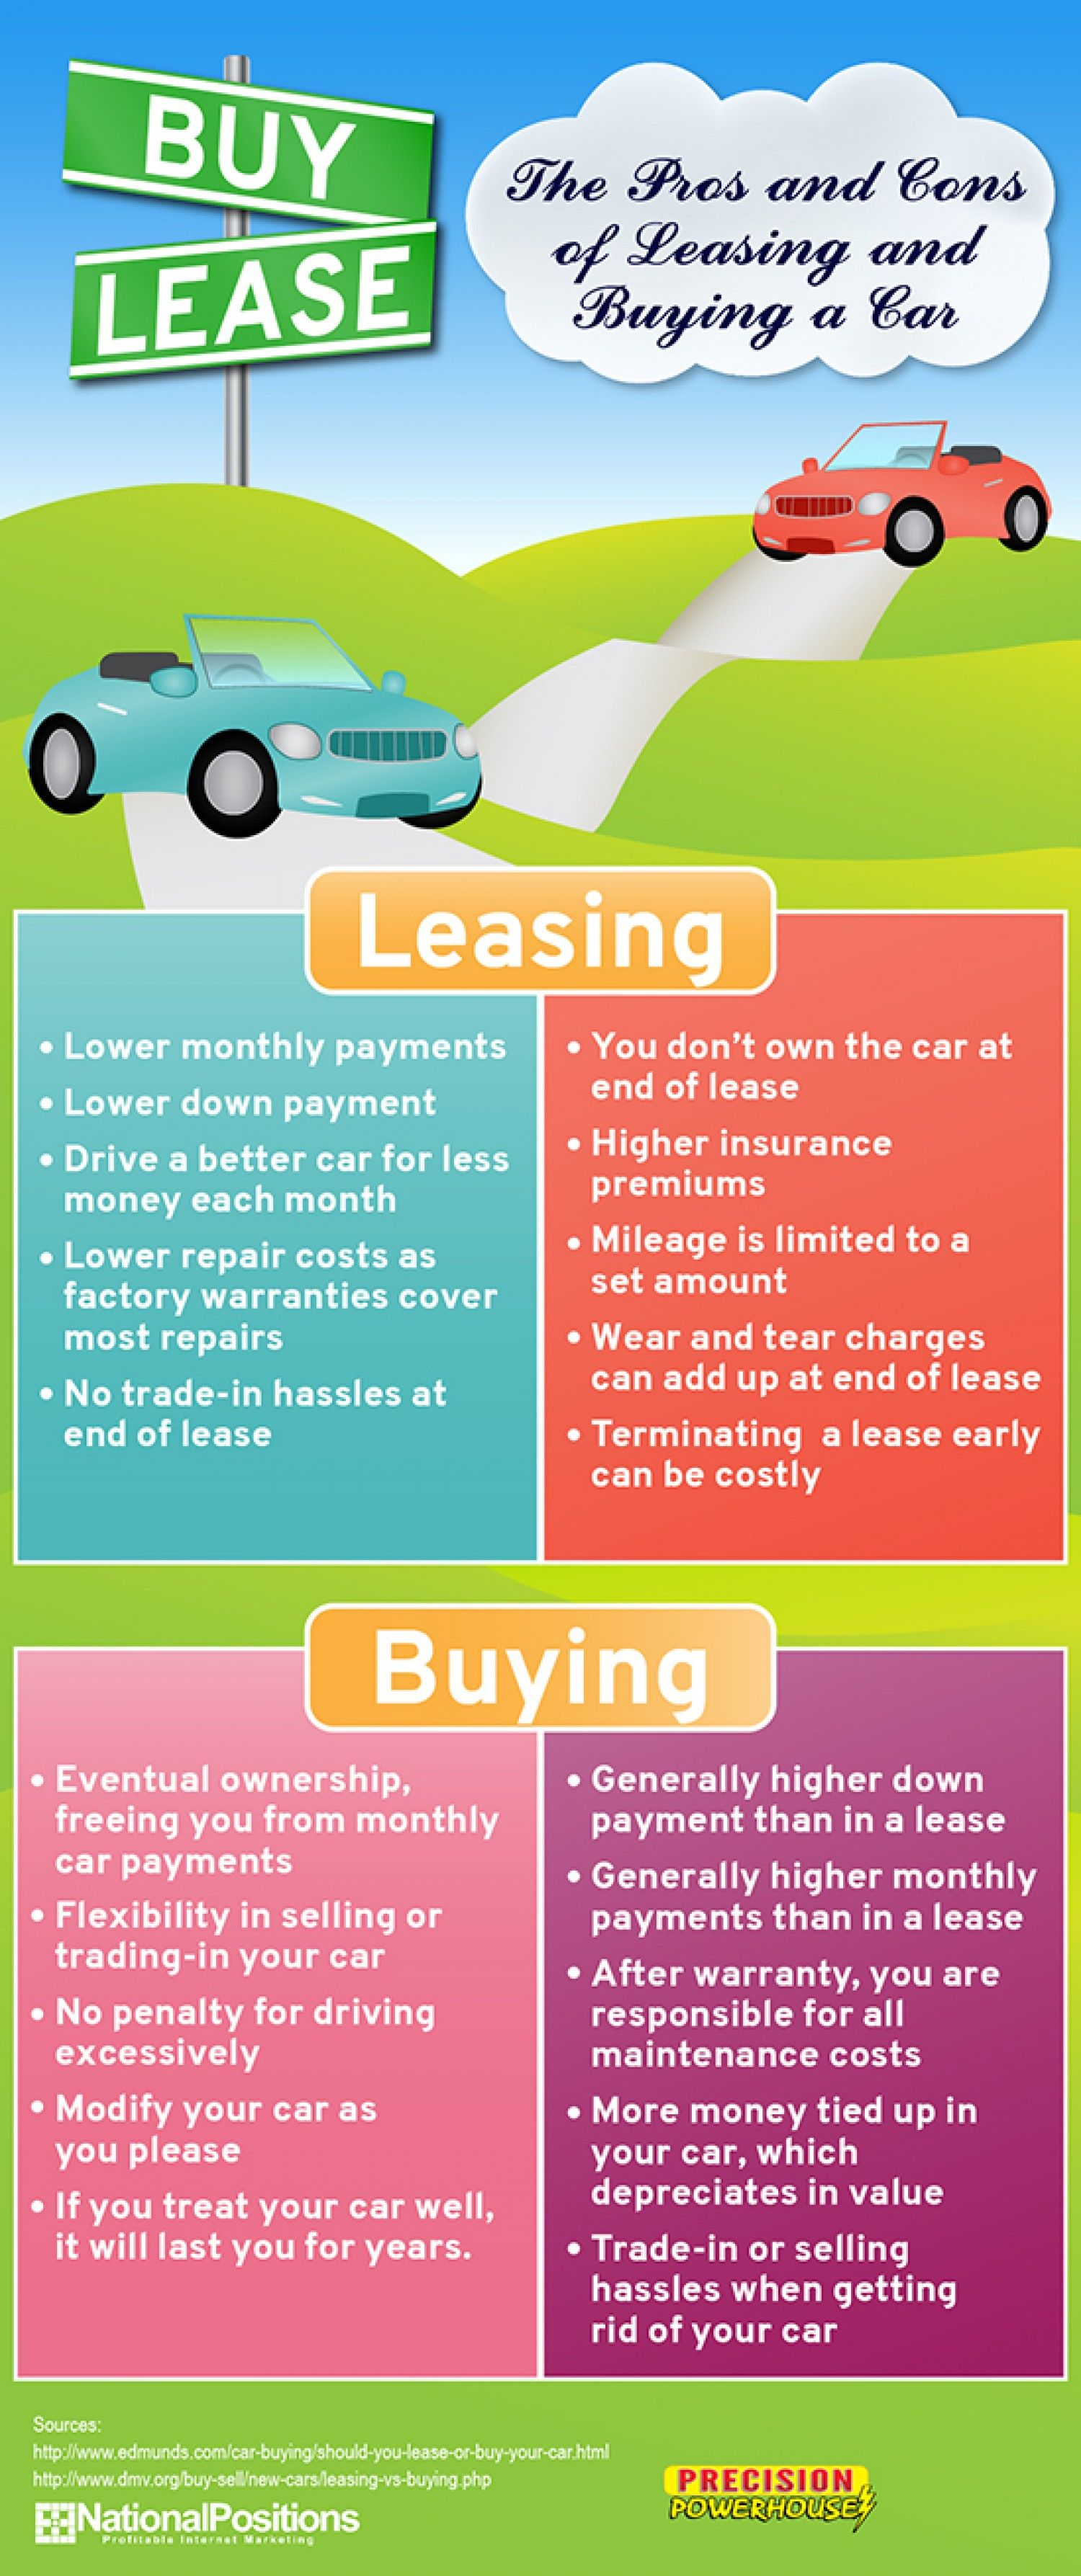 Leasing Vs Buying A Car Pros And Cons >> Pros And Cons Of Leasing And Buying A Car Infographic Car